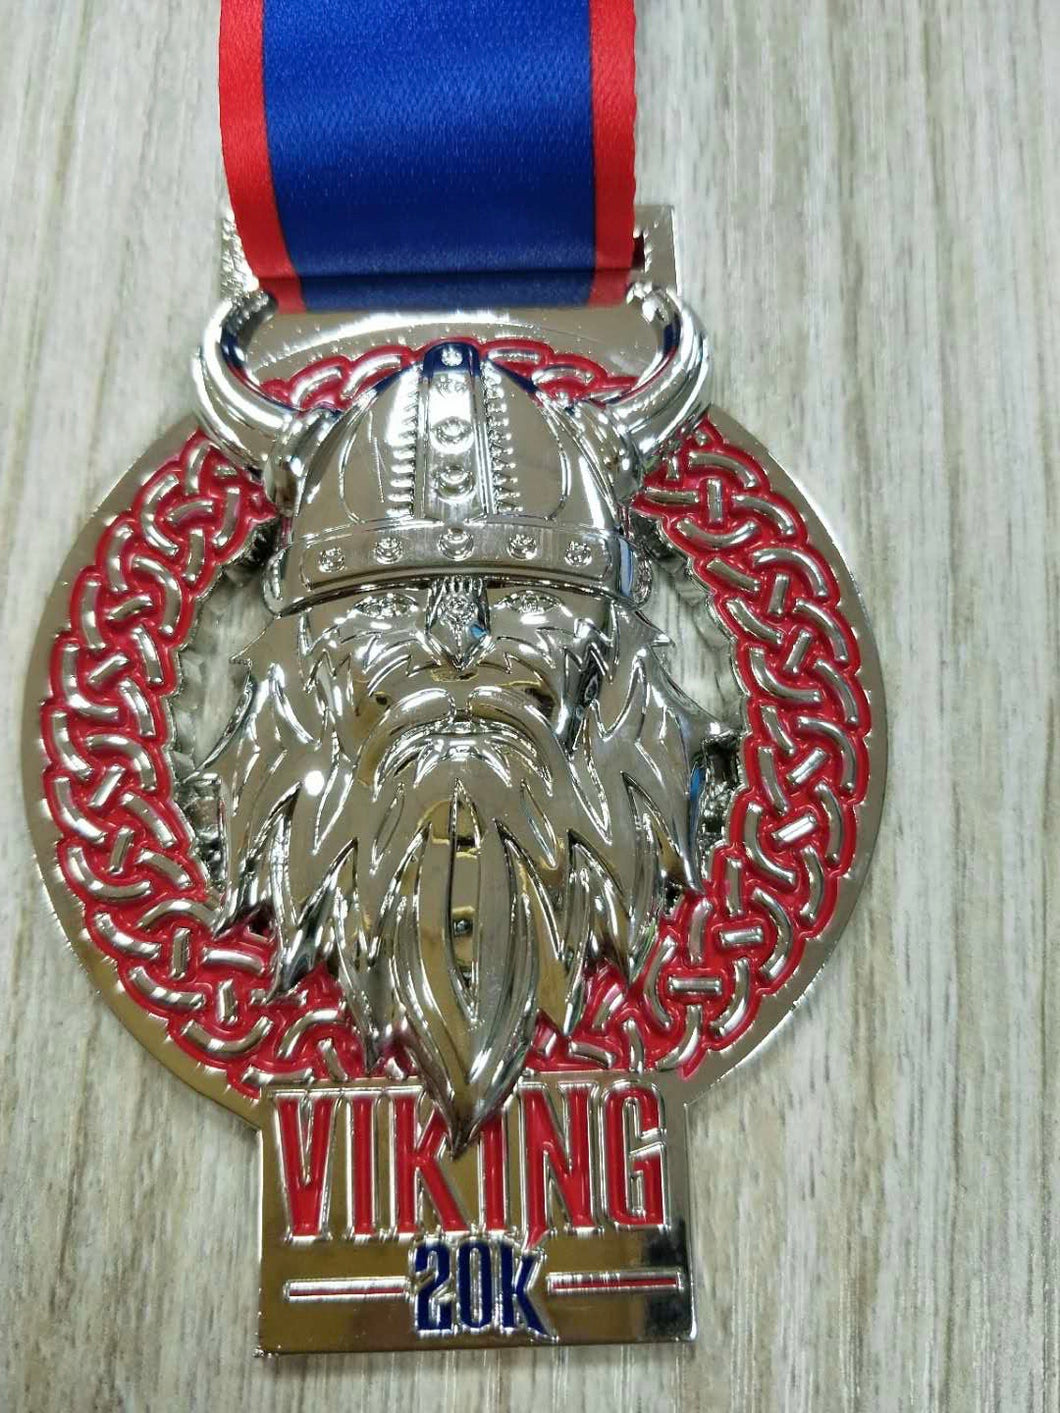 viking 20k virtual racing uk medal